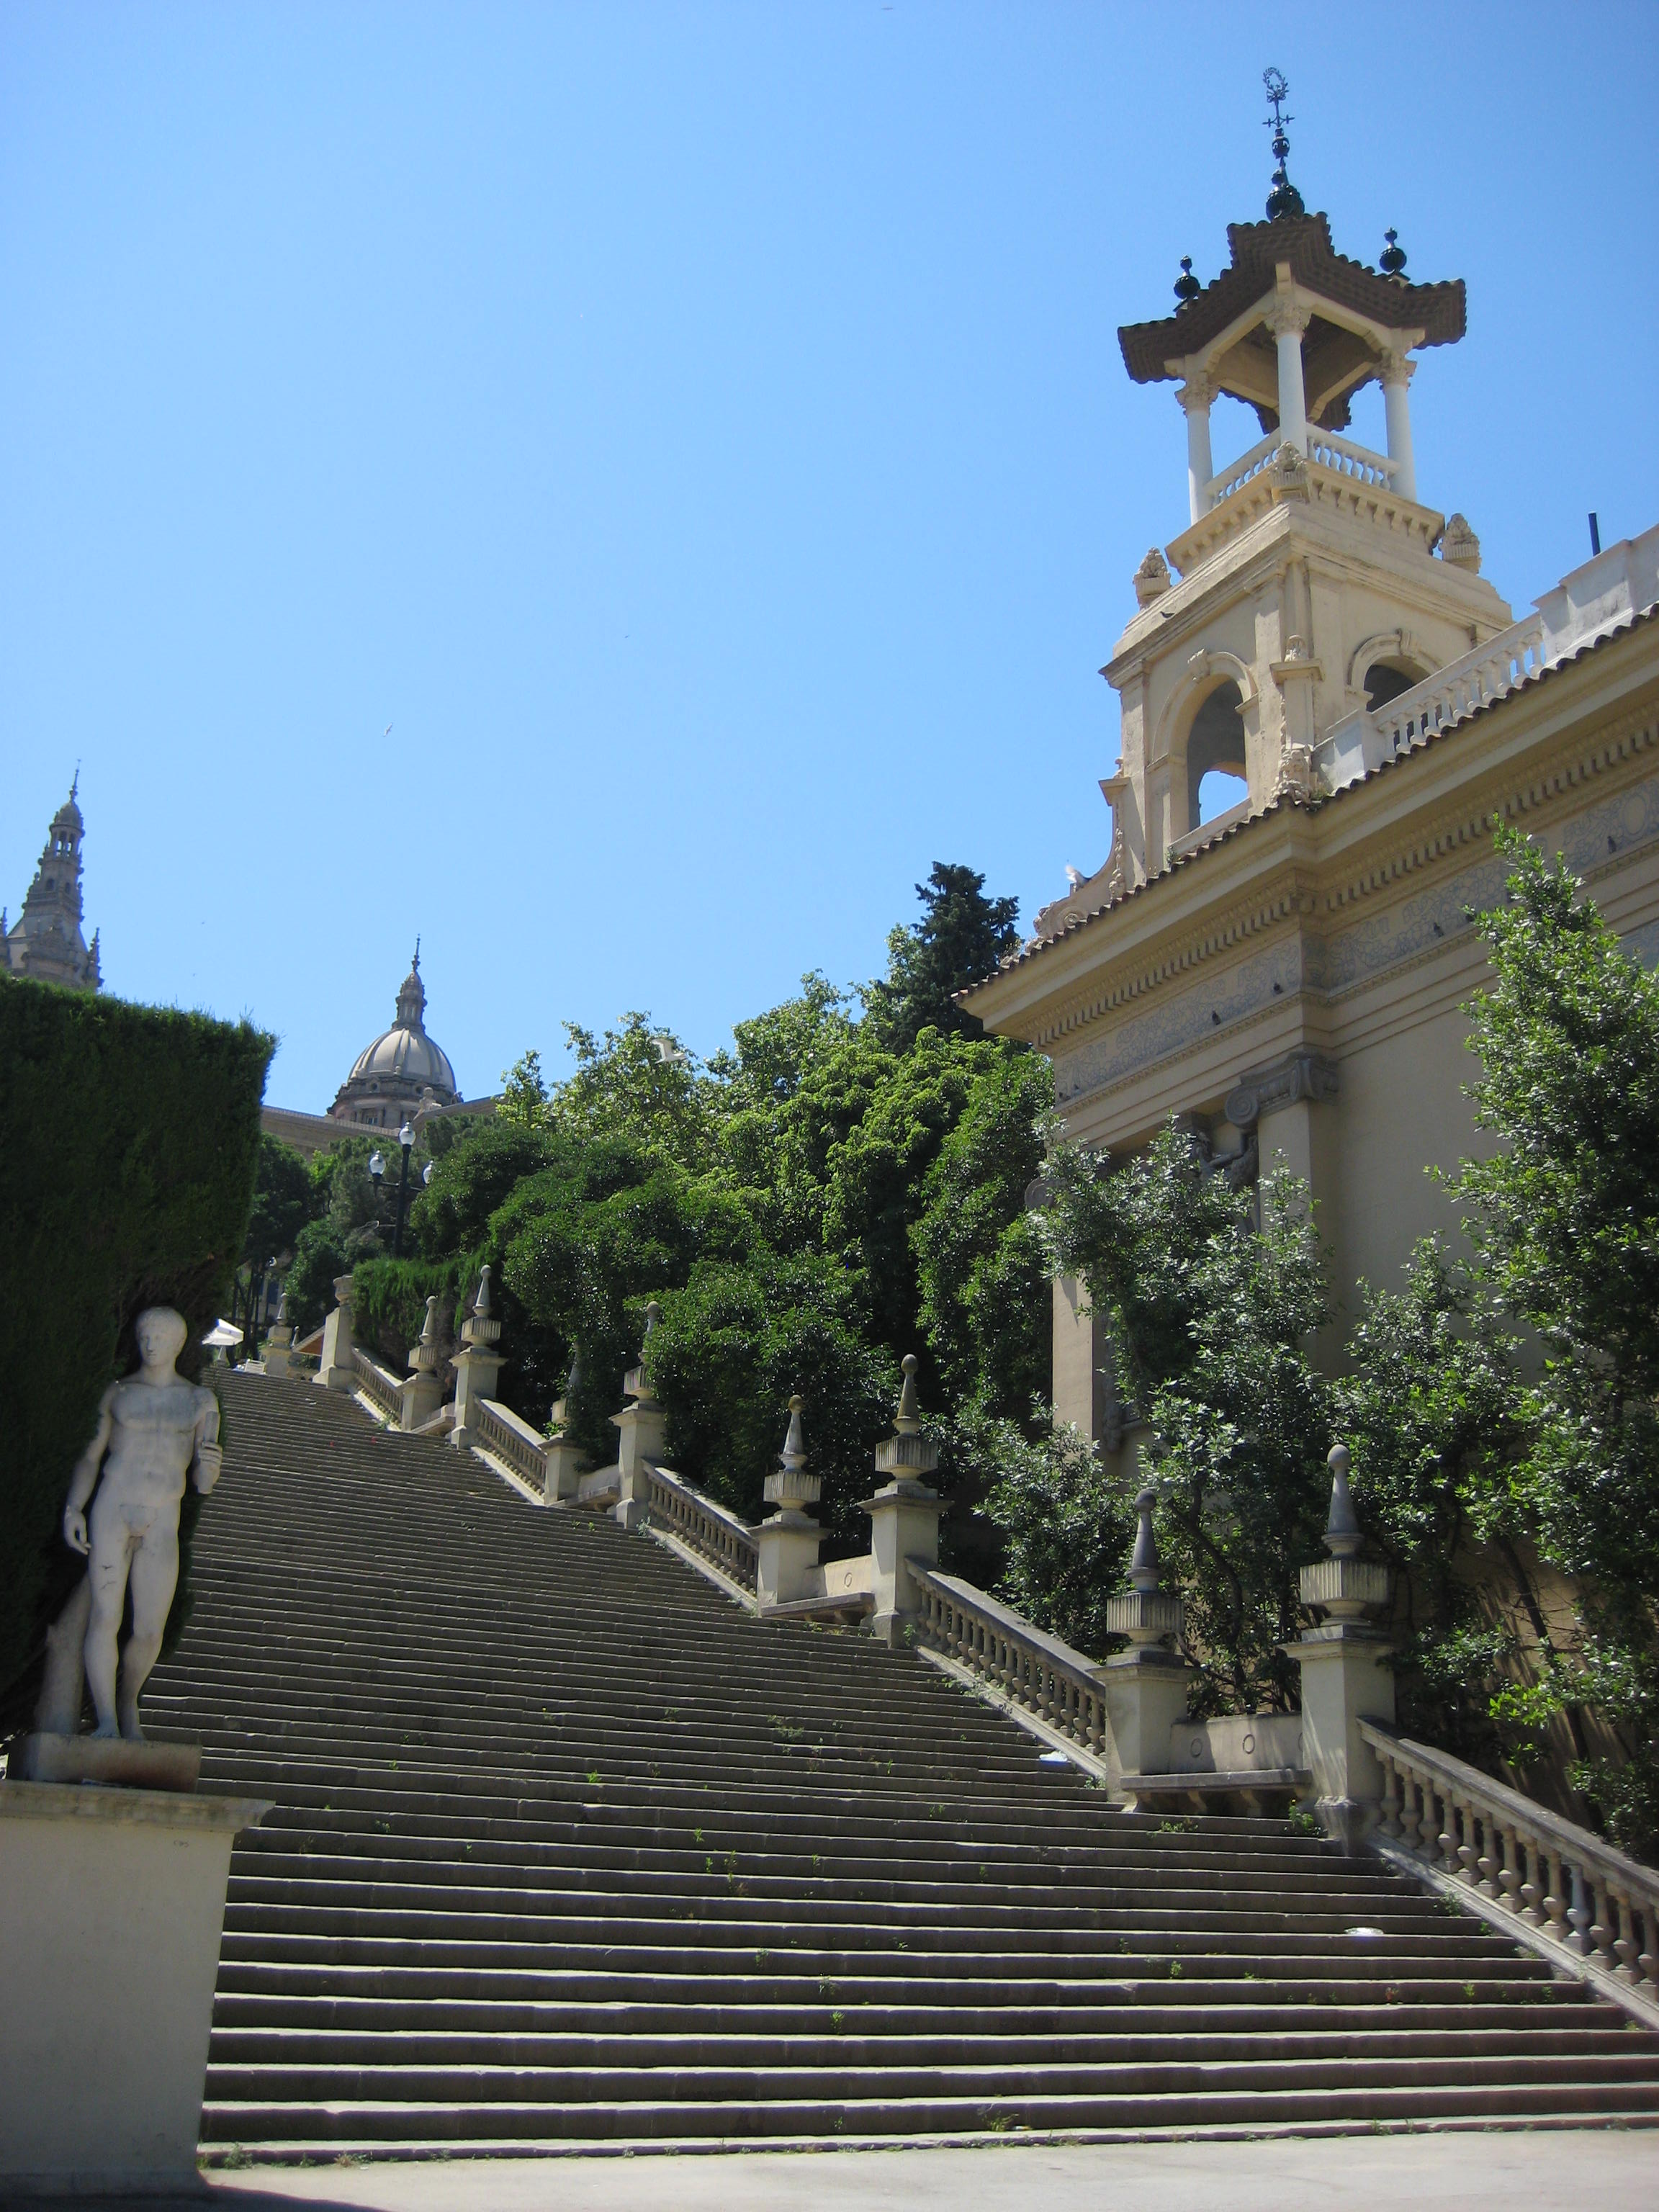 National Museum of Catalan Art, Barcelona, Spain, Stairs to entrance